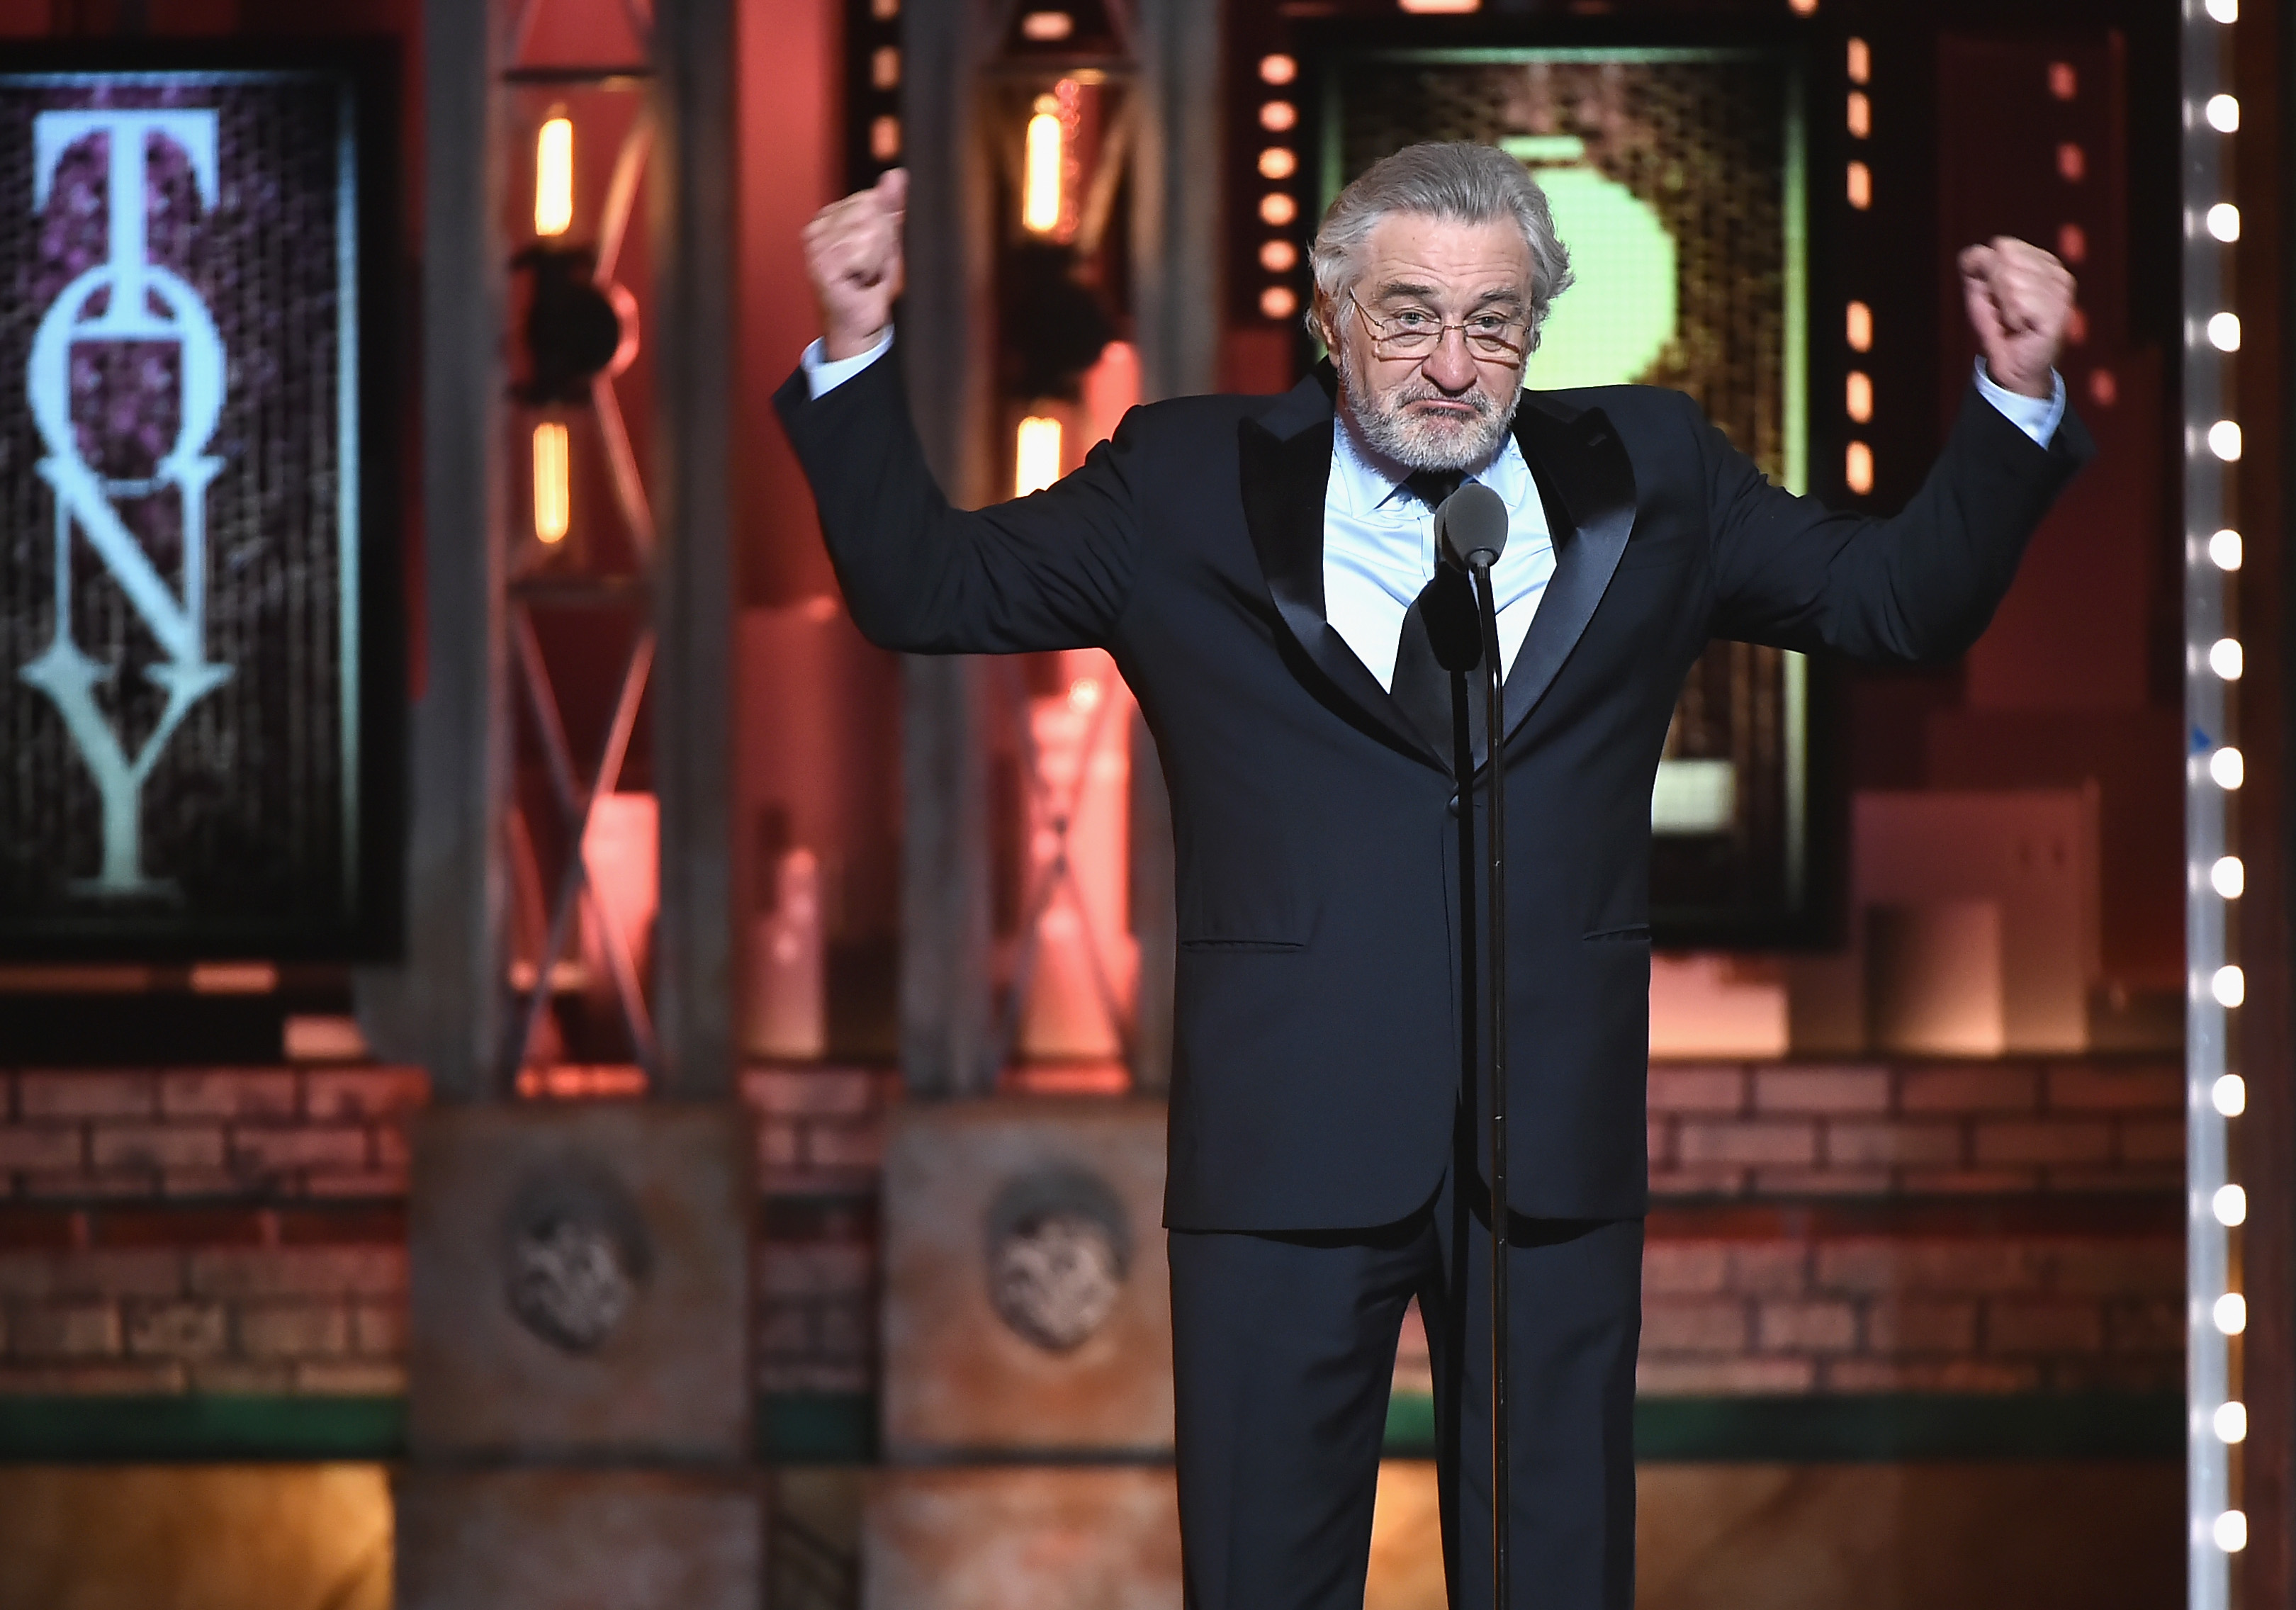 Robert De Niro speaks onstage during the 72nd Annual Tony Awards at Radio City Music Hall on June 10, 2018, in New York City. (Getty Images)